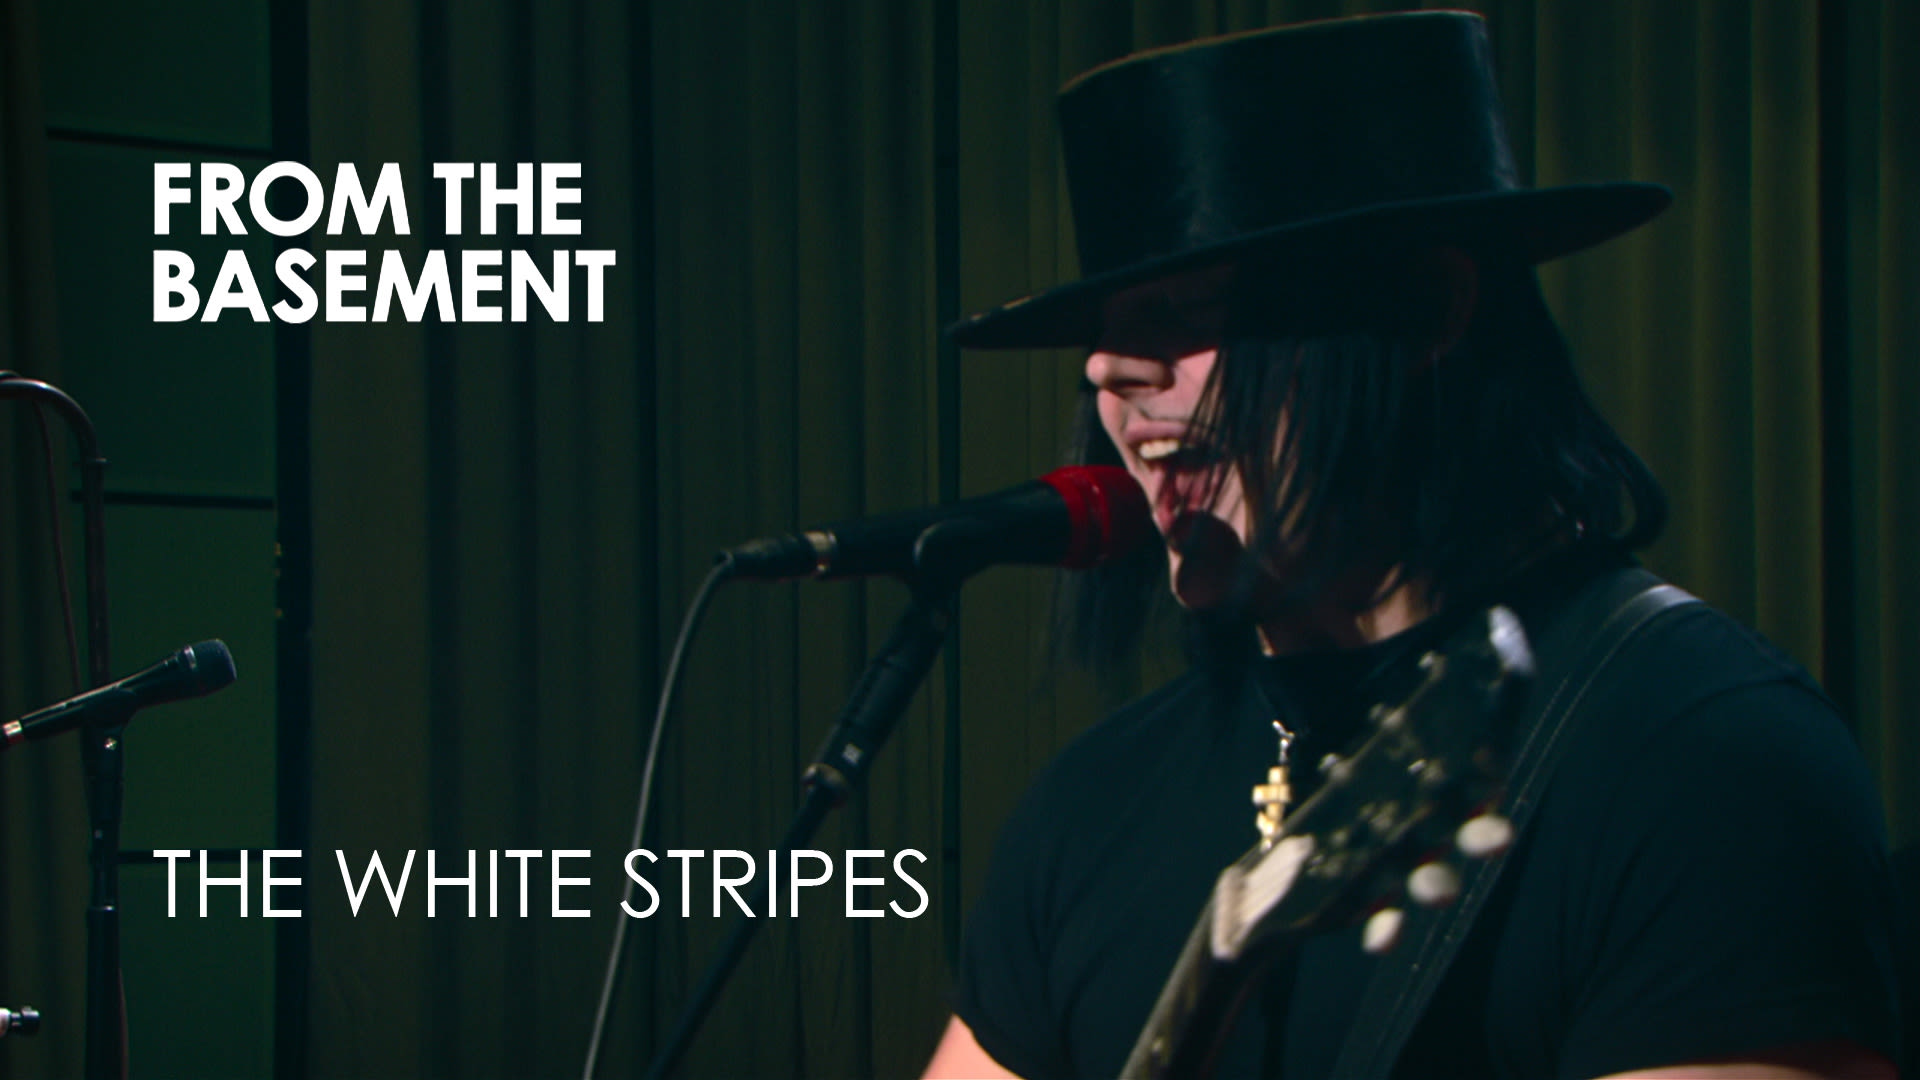 The White Stripes - From the Basement